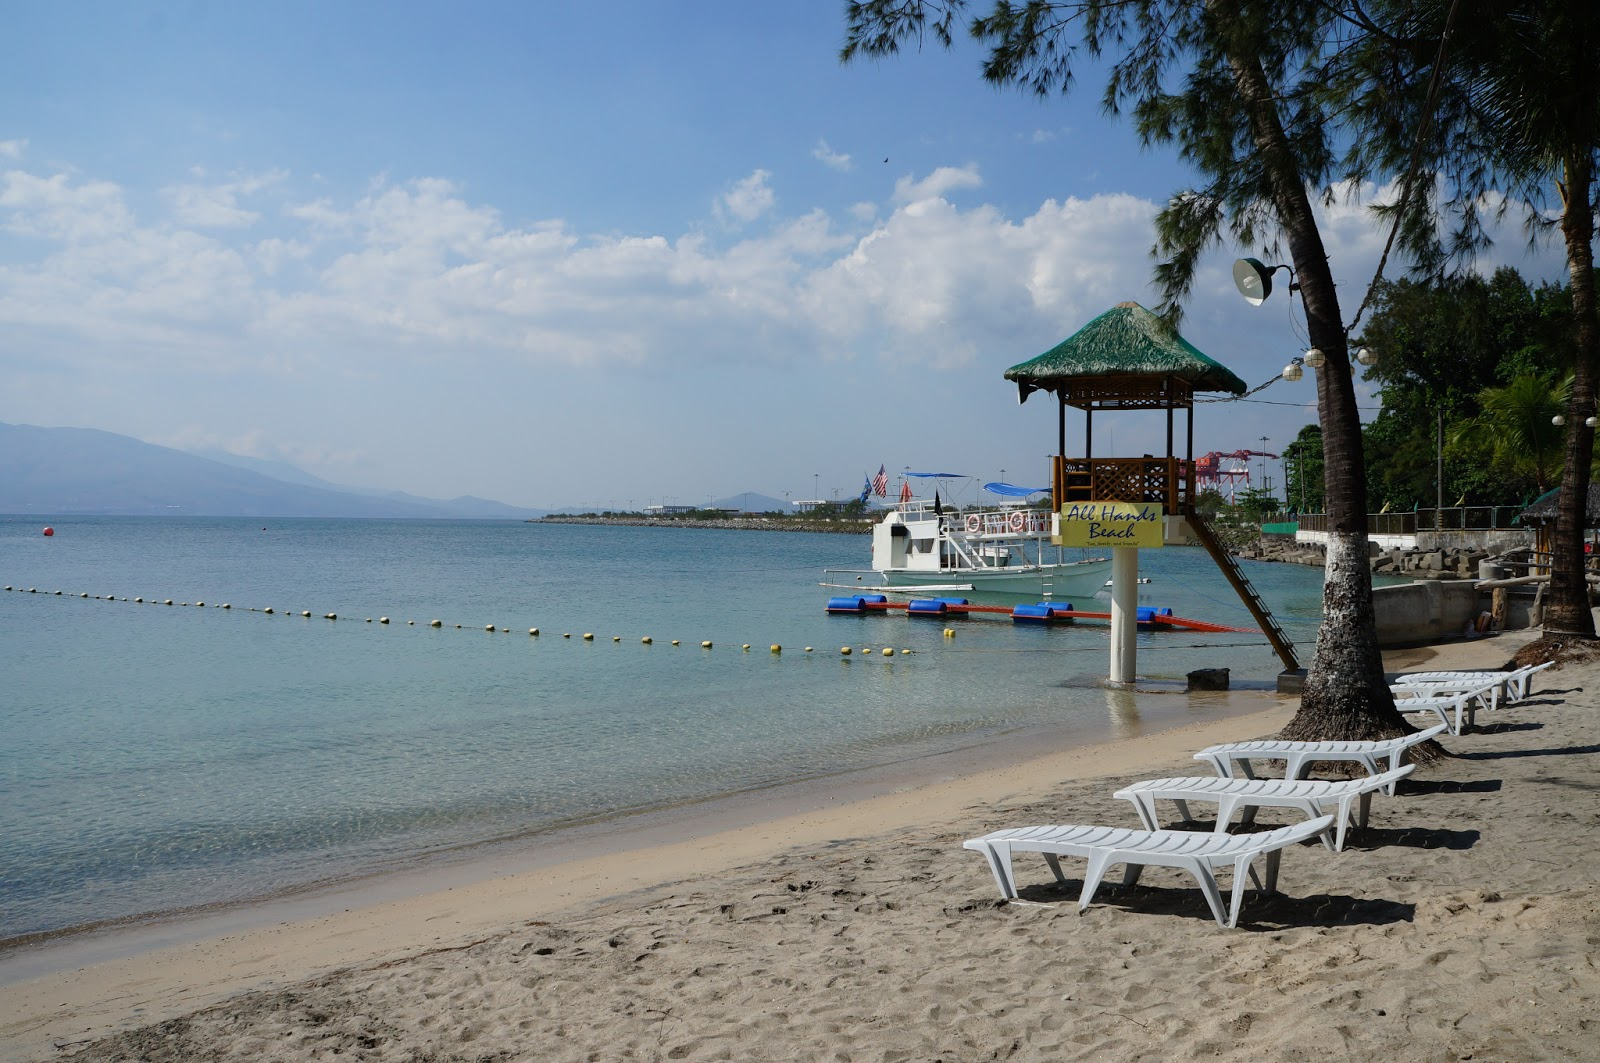 All Hands Beach Subic Bay Freeport Zones Resort For Everyone Wazzup Pilipinas News And Events